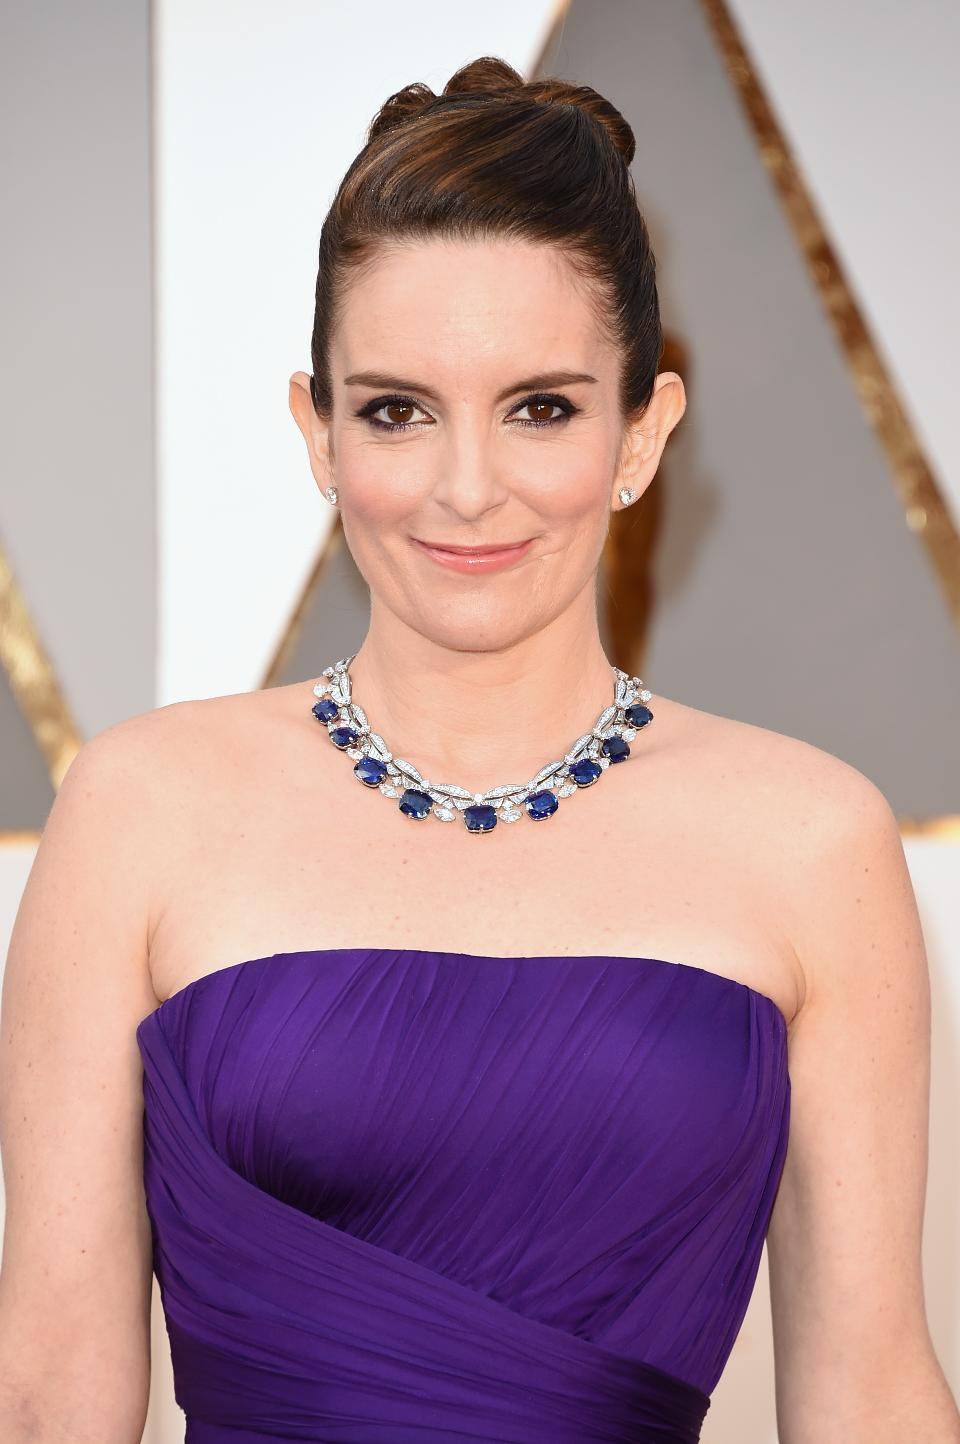 Tina Fey wearing a stunning Bulgari sapphire necklace. She seemed to be one of the few ladies sporting colored gemstones instead of white gold and diamonds, and we're definitely into it!